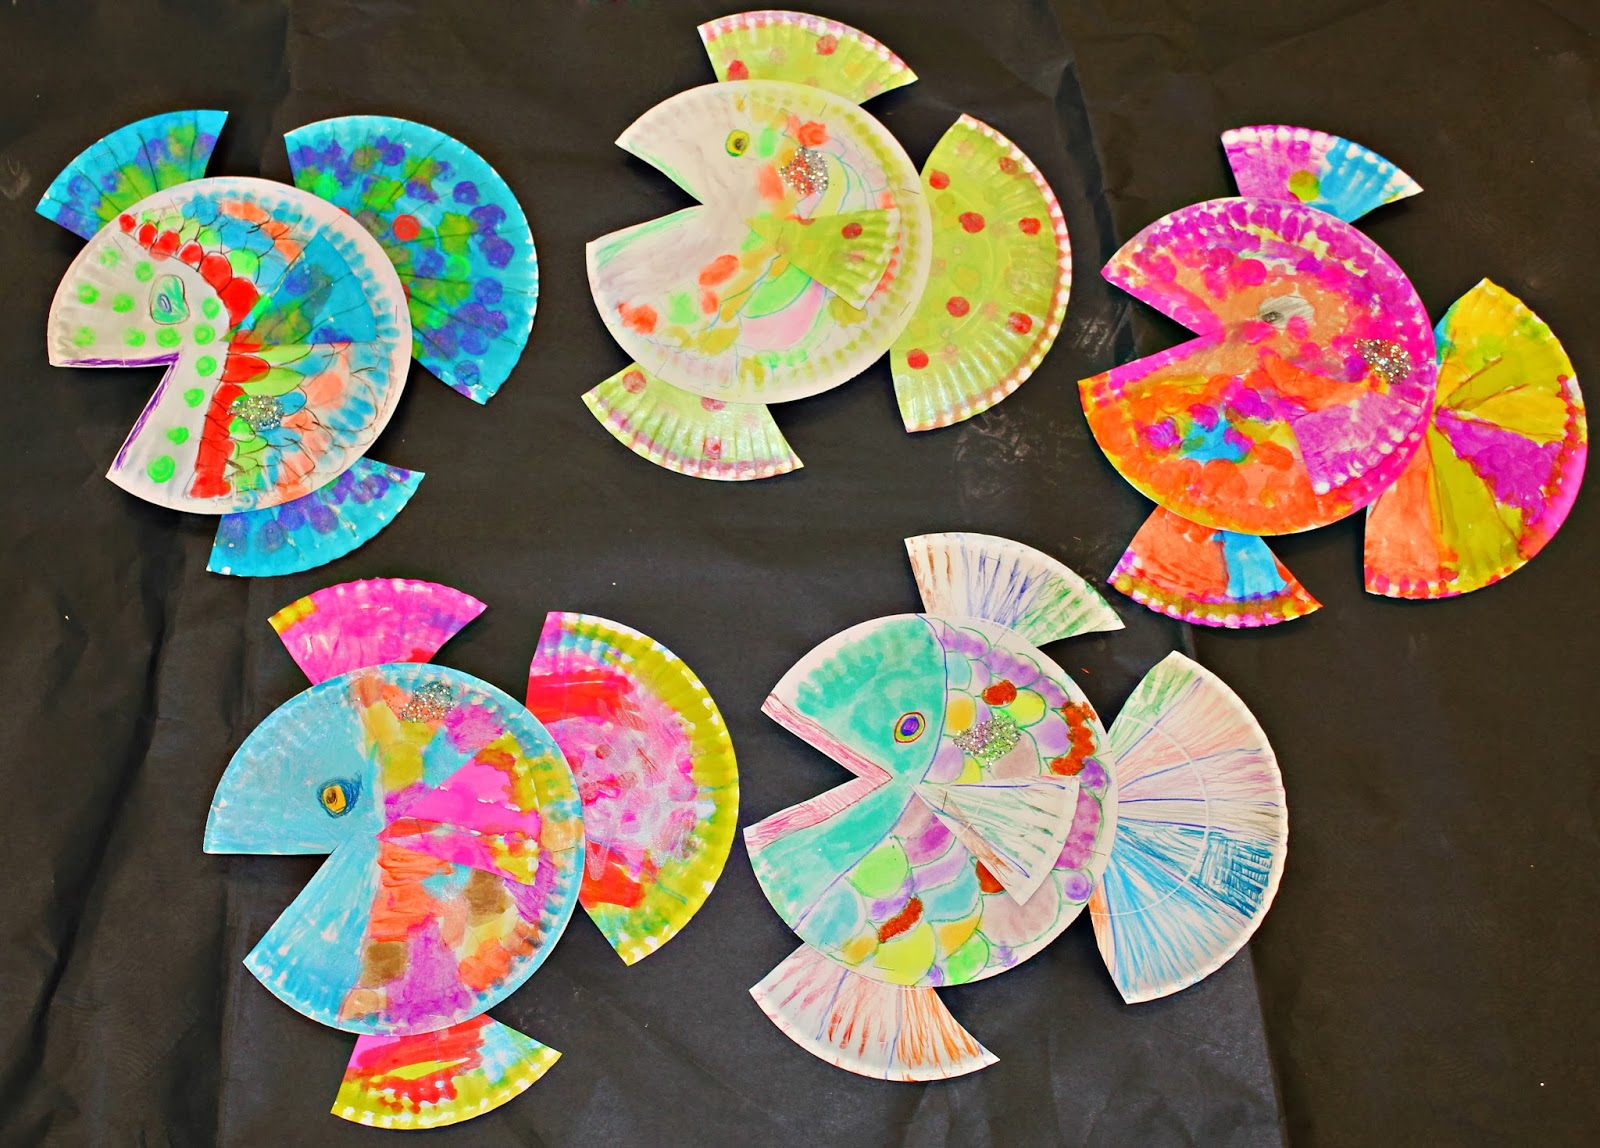 K/1 Created these wonderful fish with two paper plates paint sticks and lots of smiles!  sc 1 st  Art at Stone-Robinson Elementary - Blogger & K/1 Paper Plate Fish | Art at Stone-Robinson Elementary